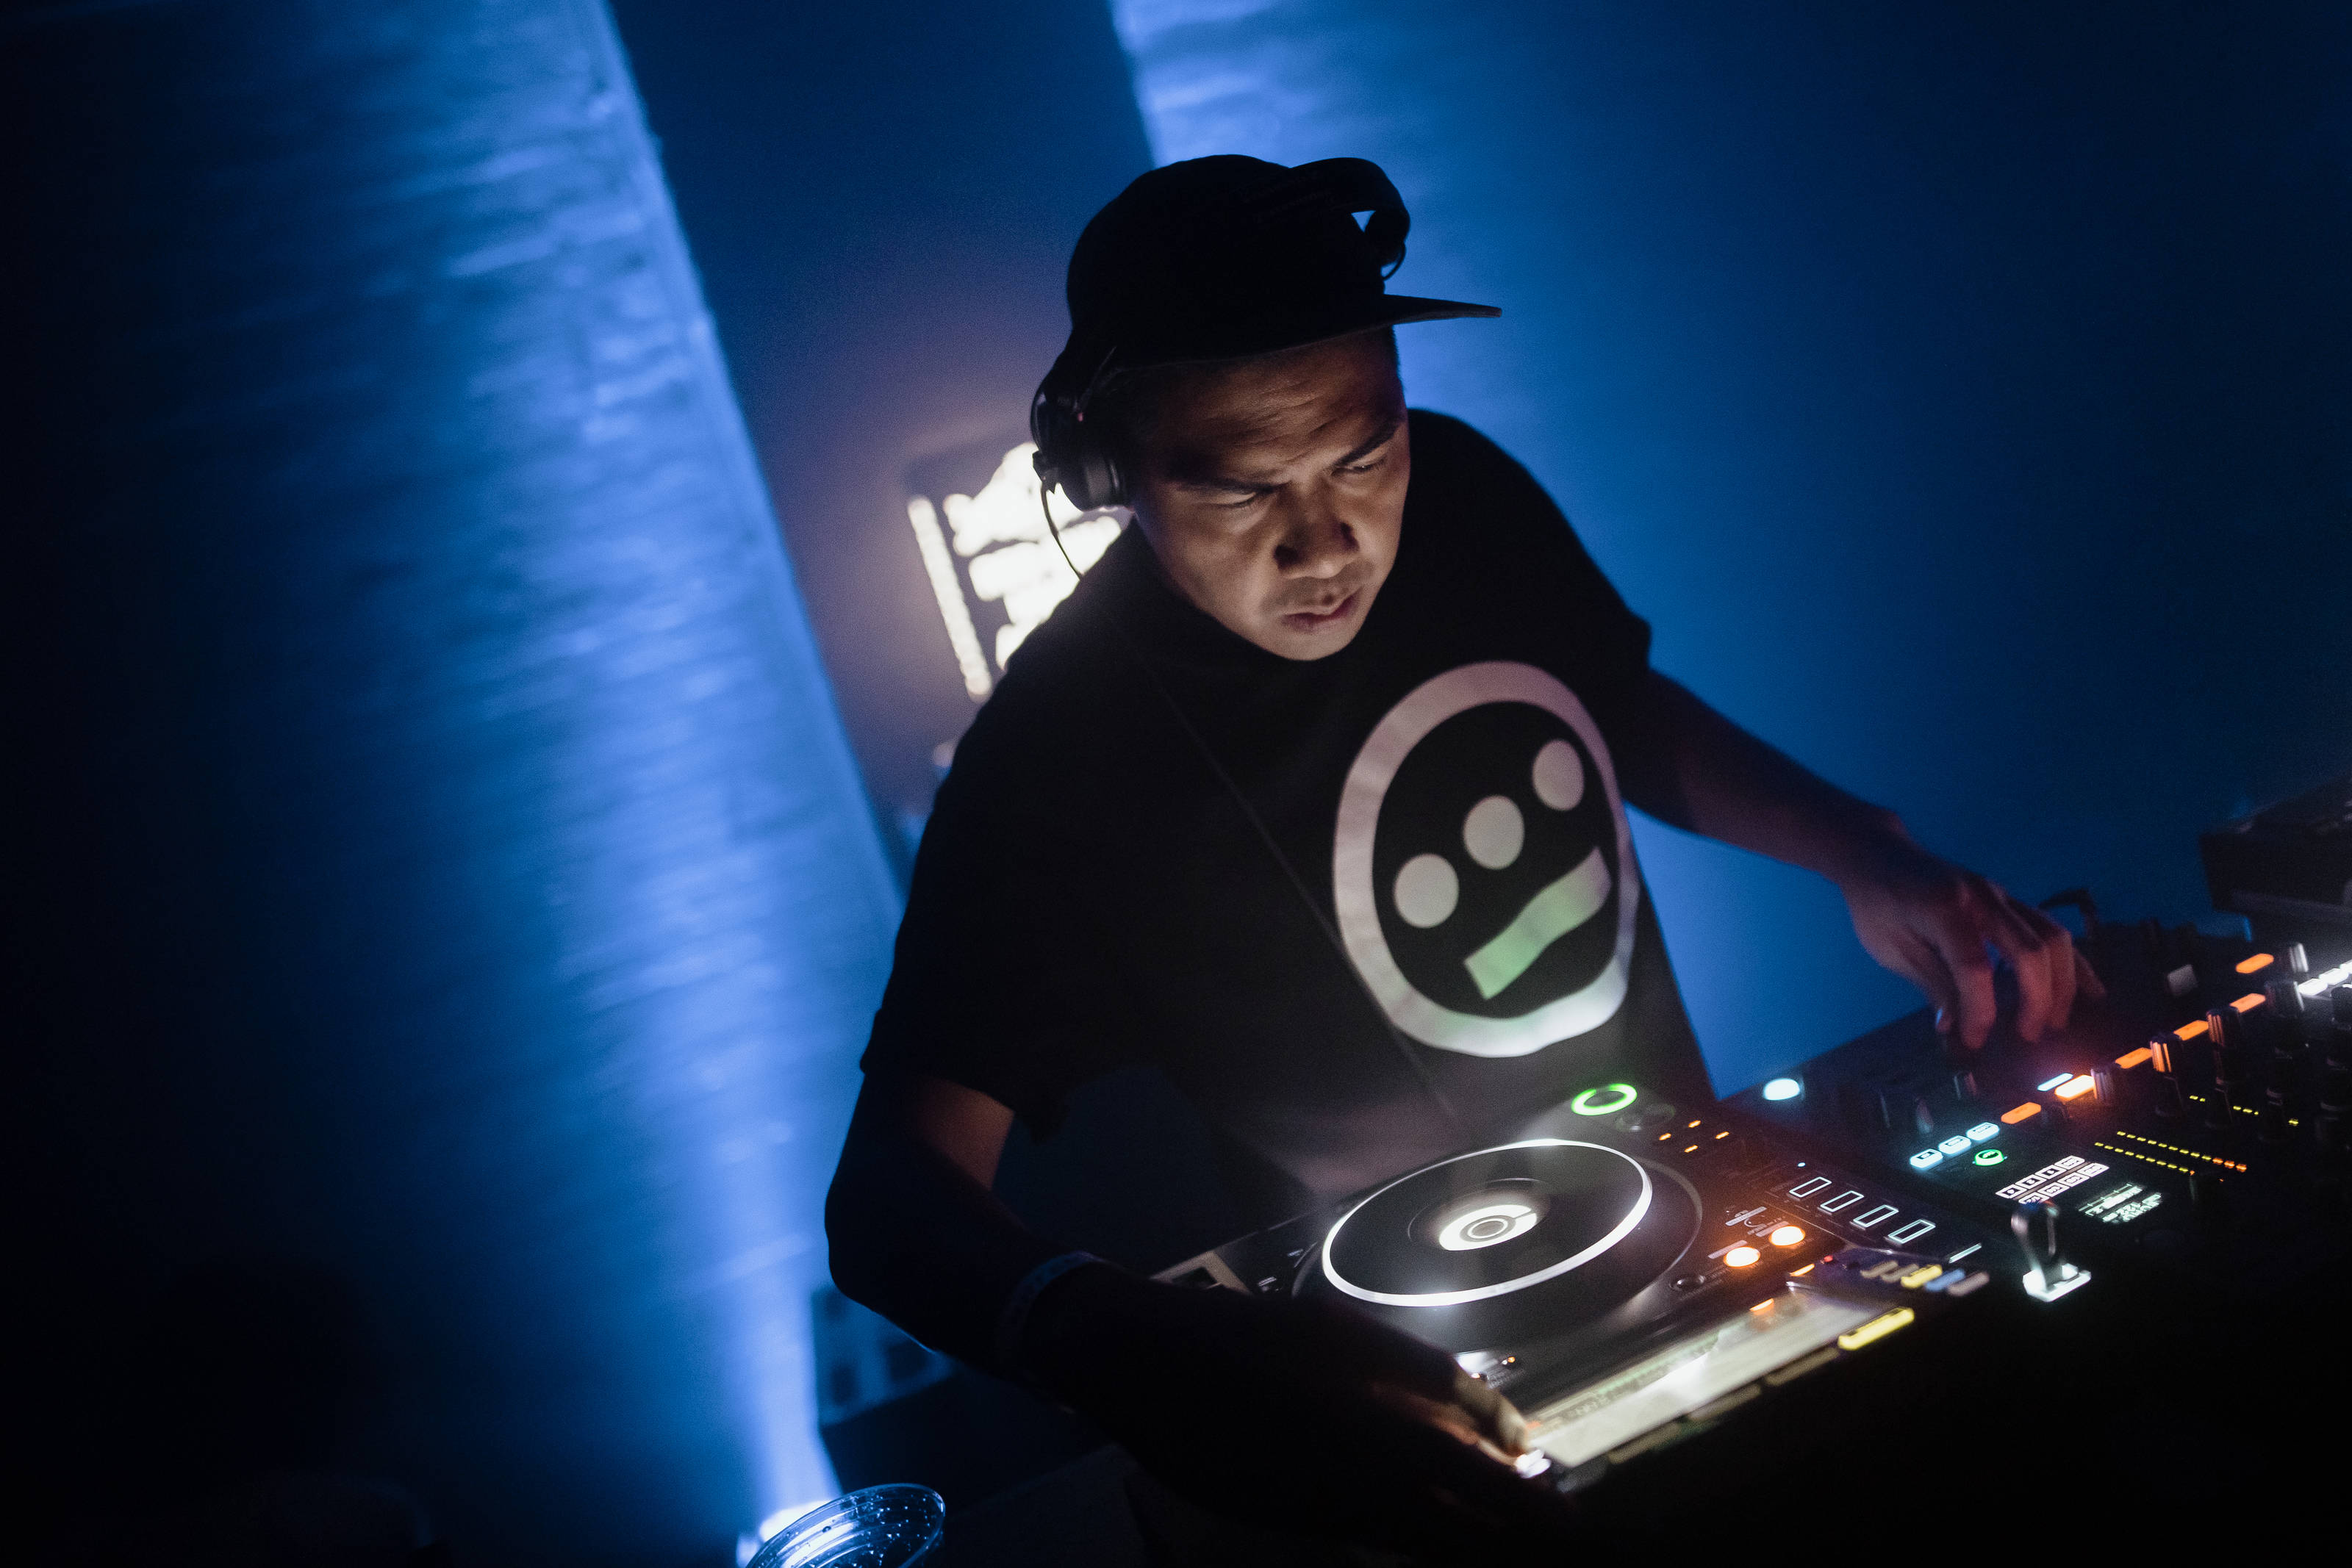 Mike Servito Red Bull Content Pool photo credit Karel Chladek